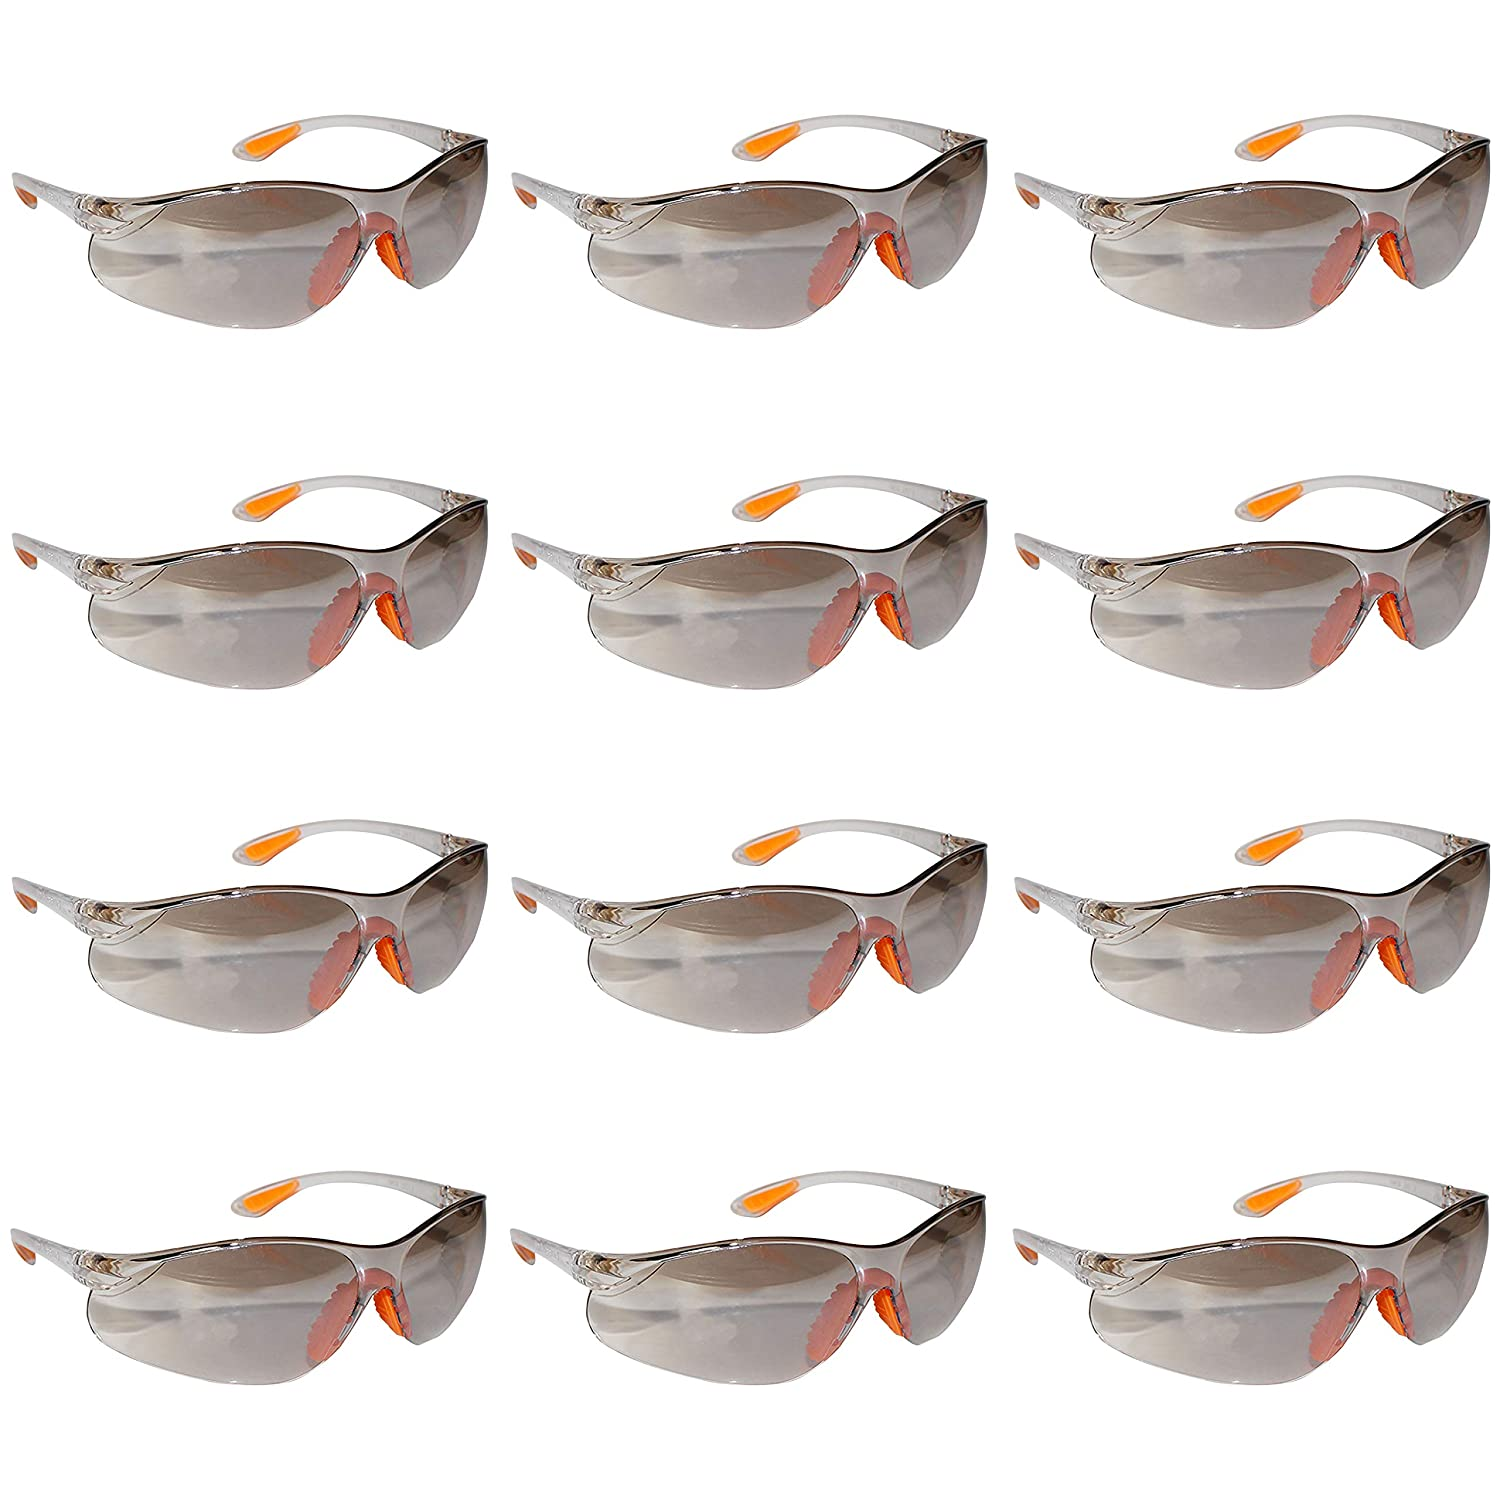 Kurtzy Pack of 12 Safety Glasses For Men & Women With Nose Rest - Grey Acrylic Plastic Are Slightly Tinted Will Protect Your Eyes From Spills, Splash Of Chemicals and Dust While Working